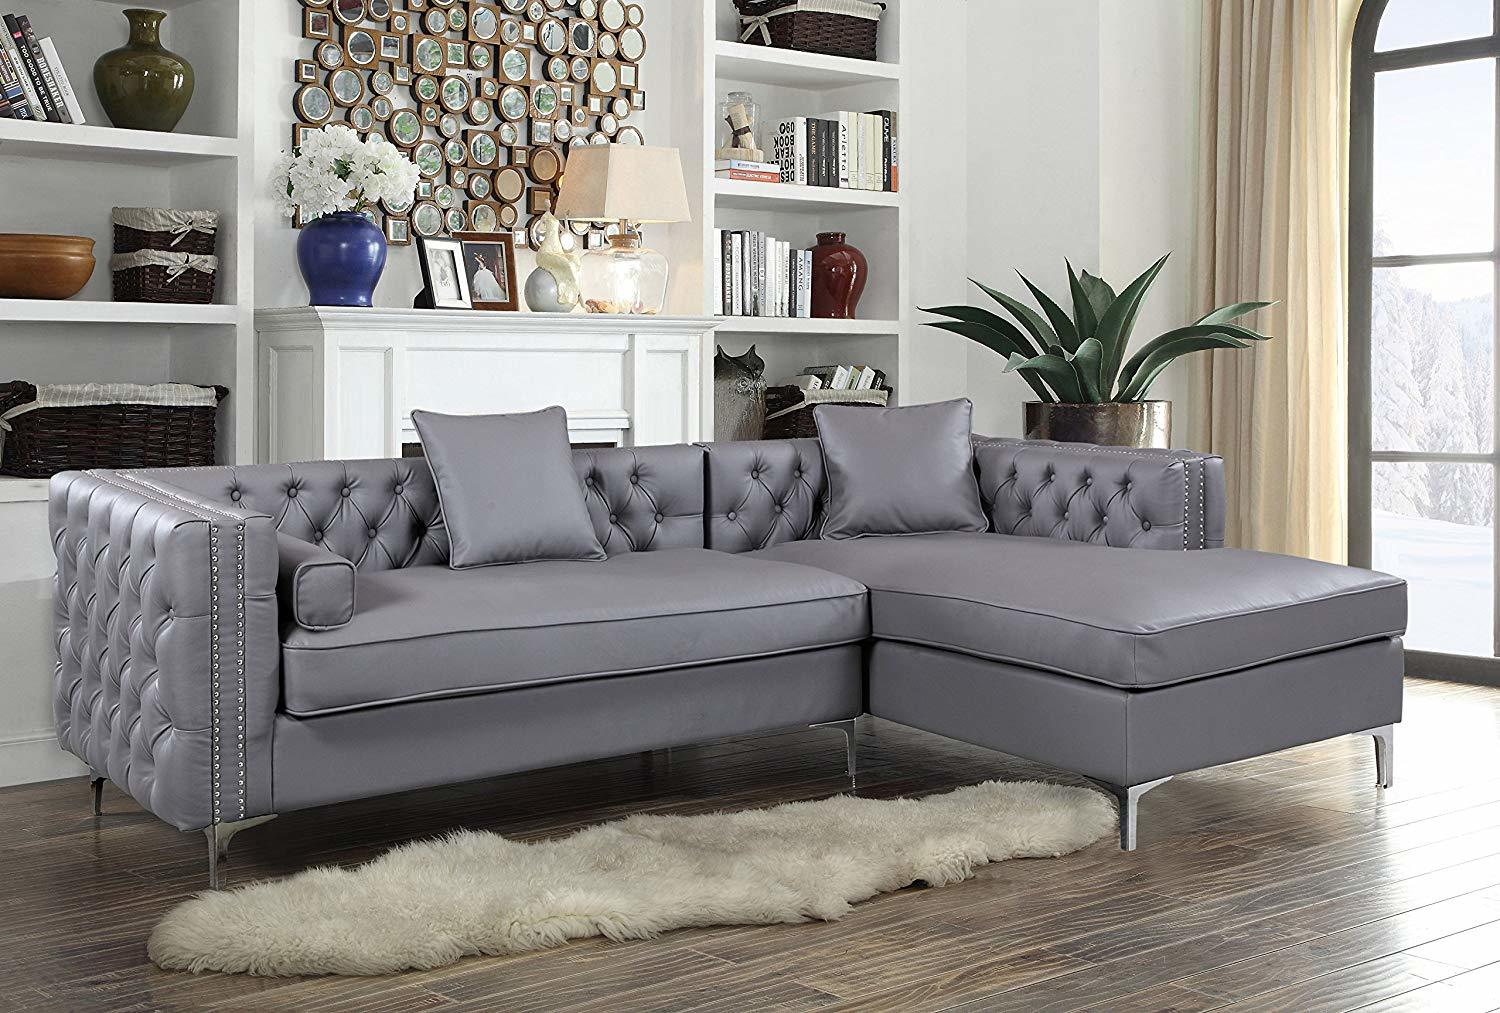 Iconic Home Da Vinci Tufted Silver Trim Grey PU Leather Right Facing Sectional Sofa